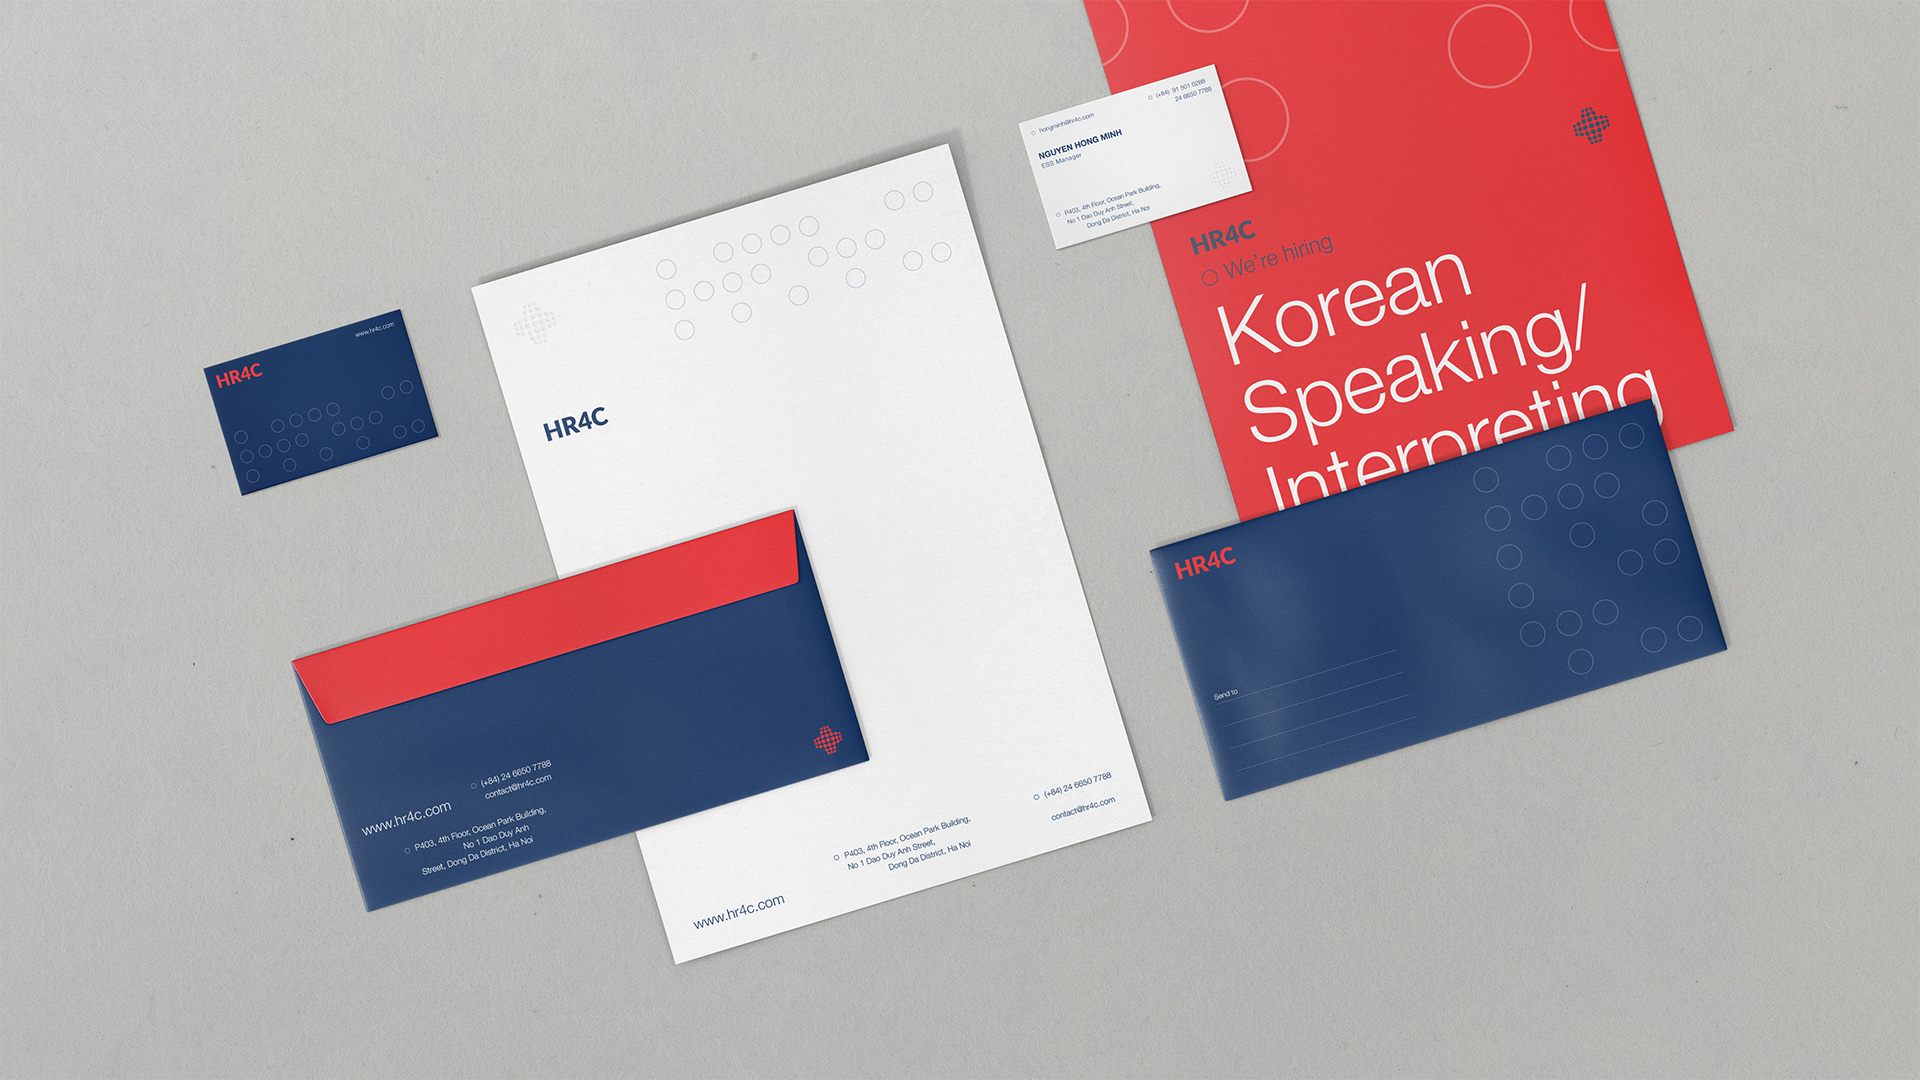 Duong Tran Creates New Brand Identity for HR4C Human Resource Consulting Firm